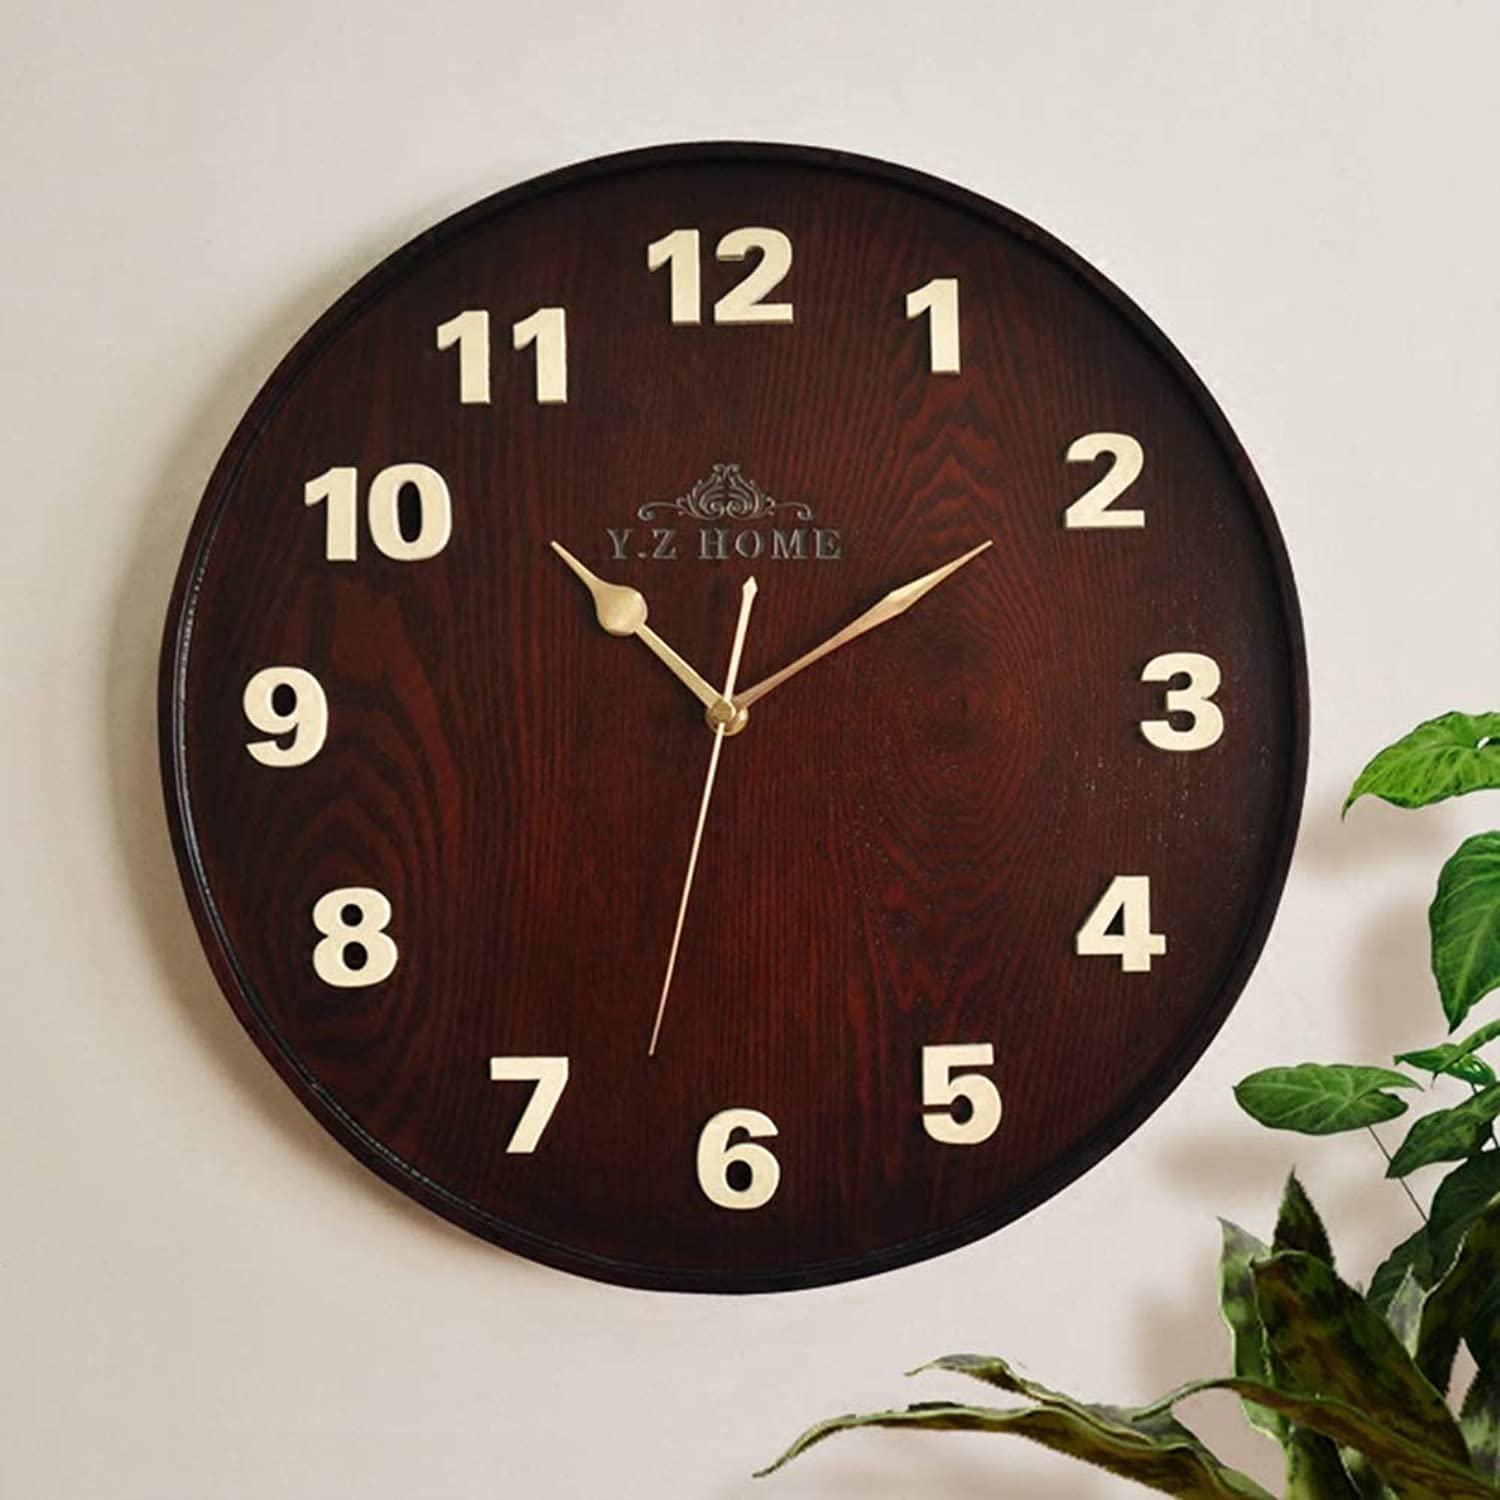 Wall Clock Wooden Vintage Non-Ticking Number Wall Clock 16inch Quartz Silent Sweep Wall Clock Decorative Indoor Kitchen (color   B)